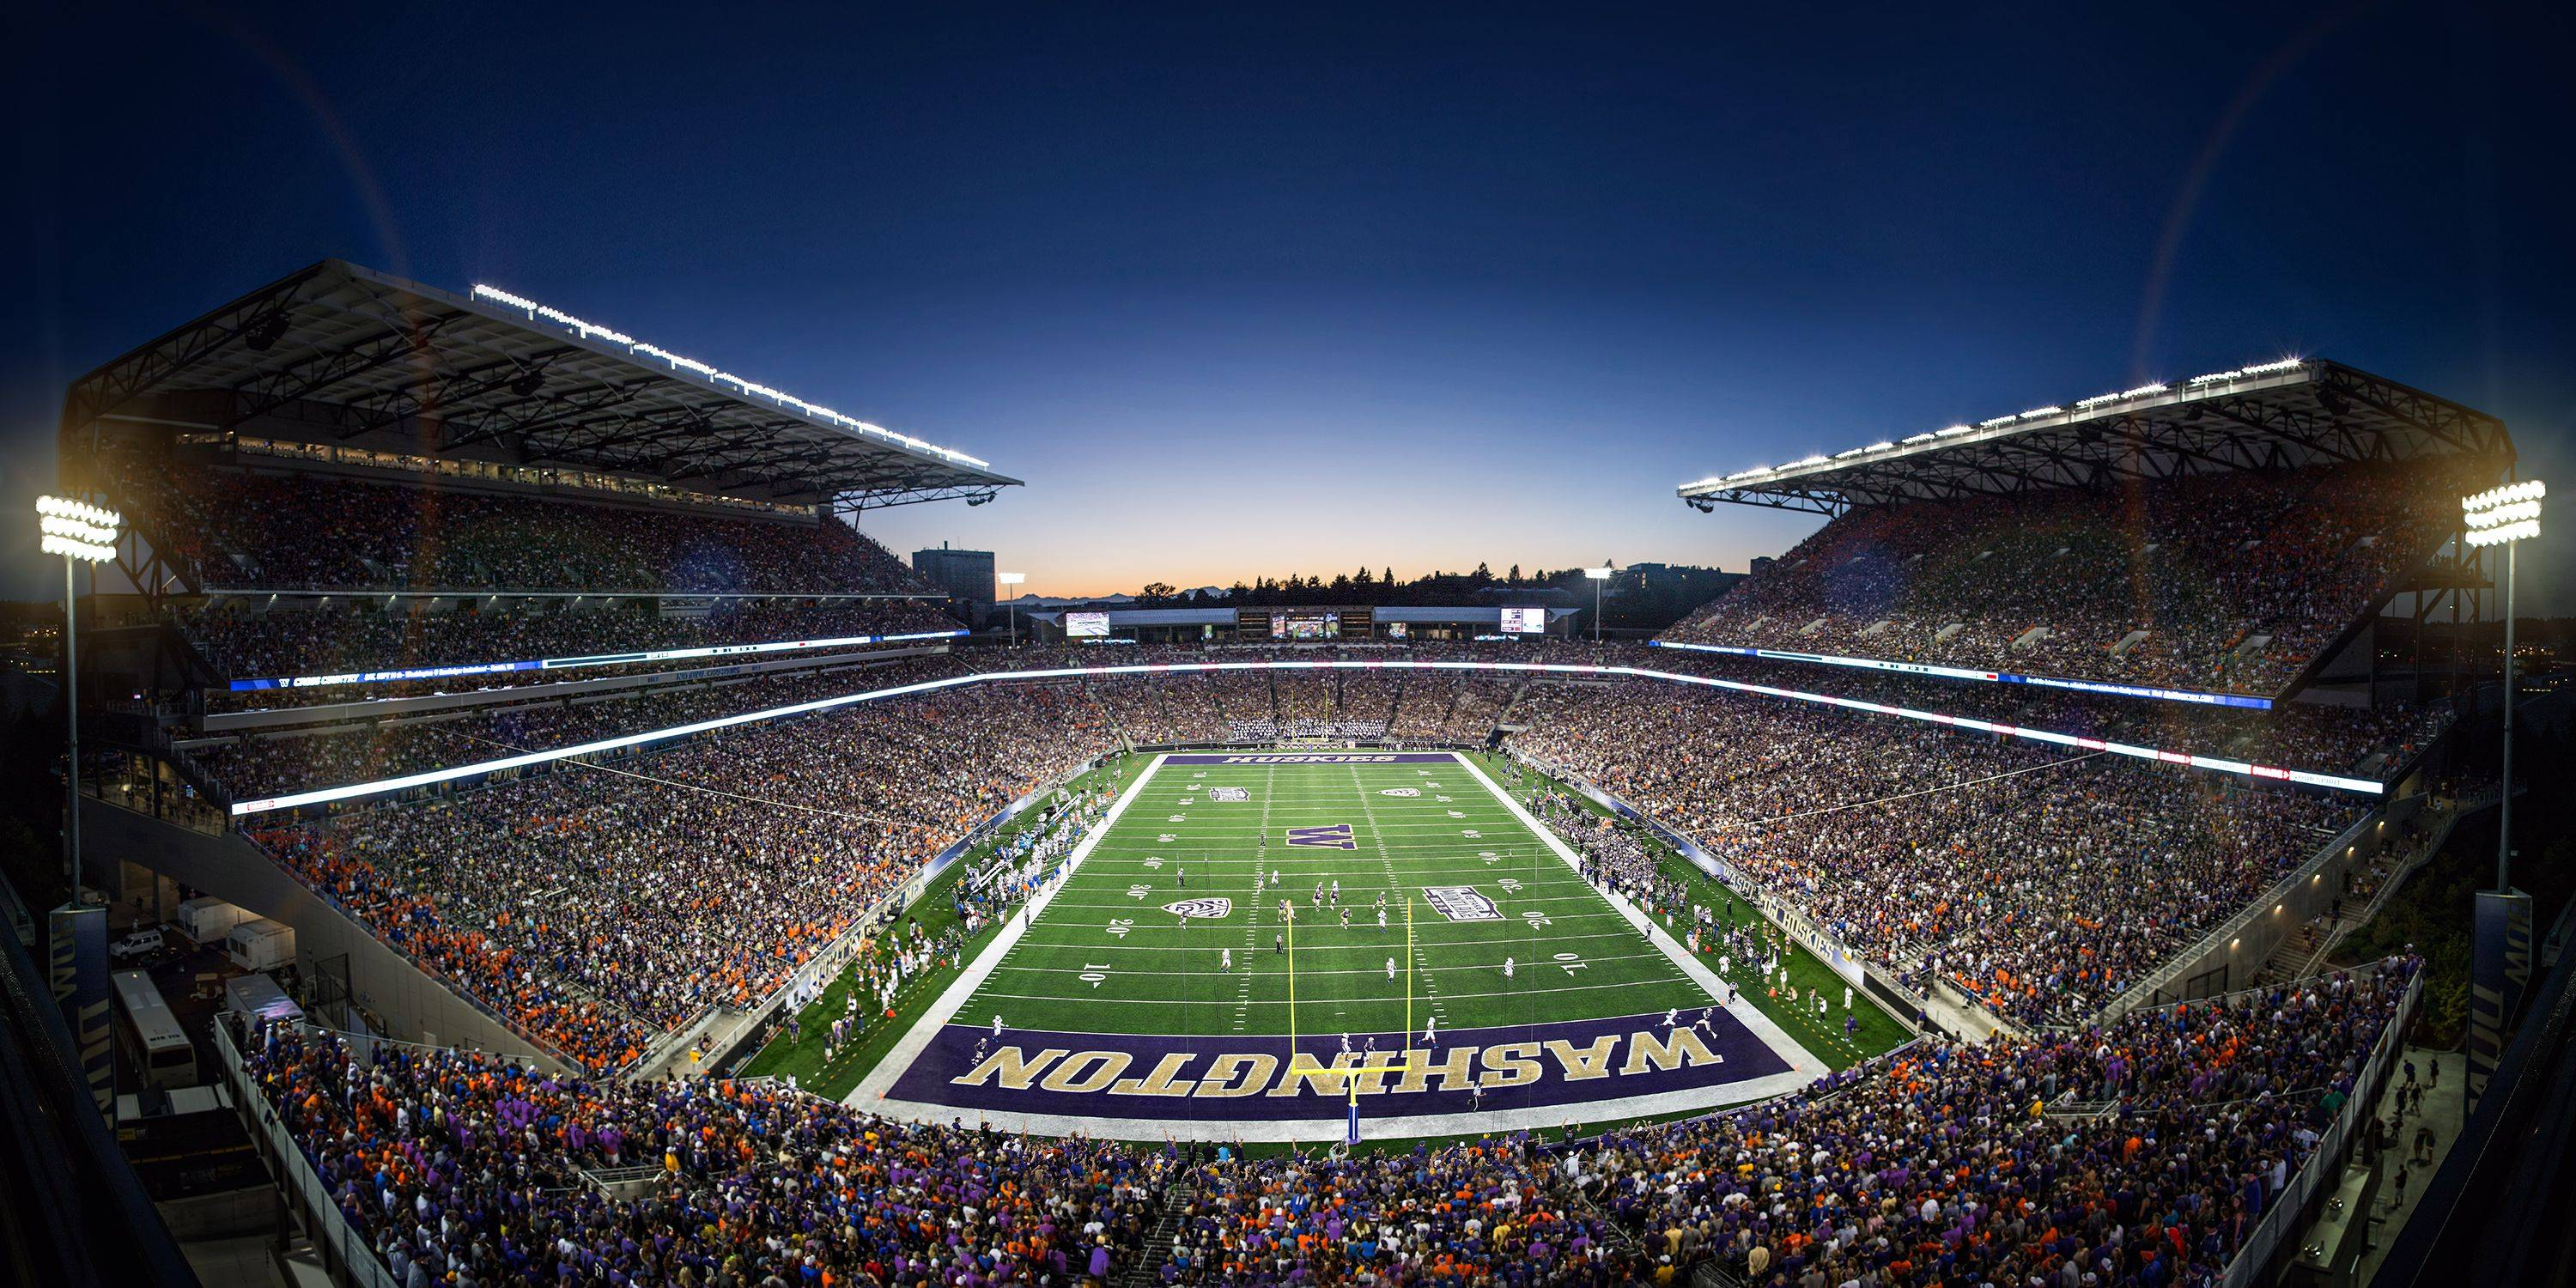 Love Animated Wallpaper For Mobile Download University Of Washington Wallpaper Gallery